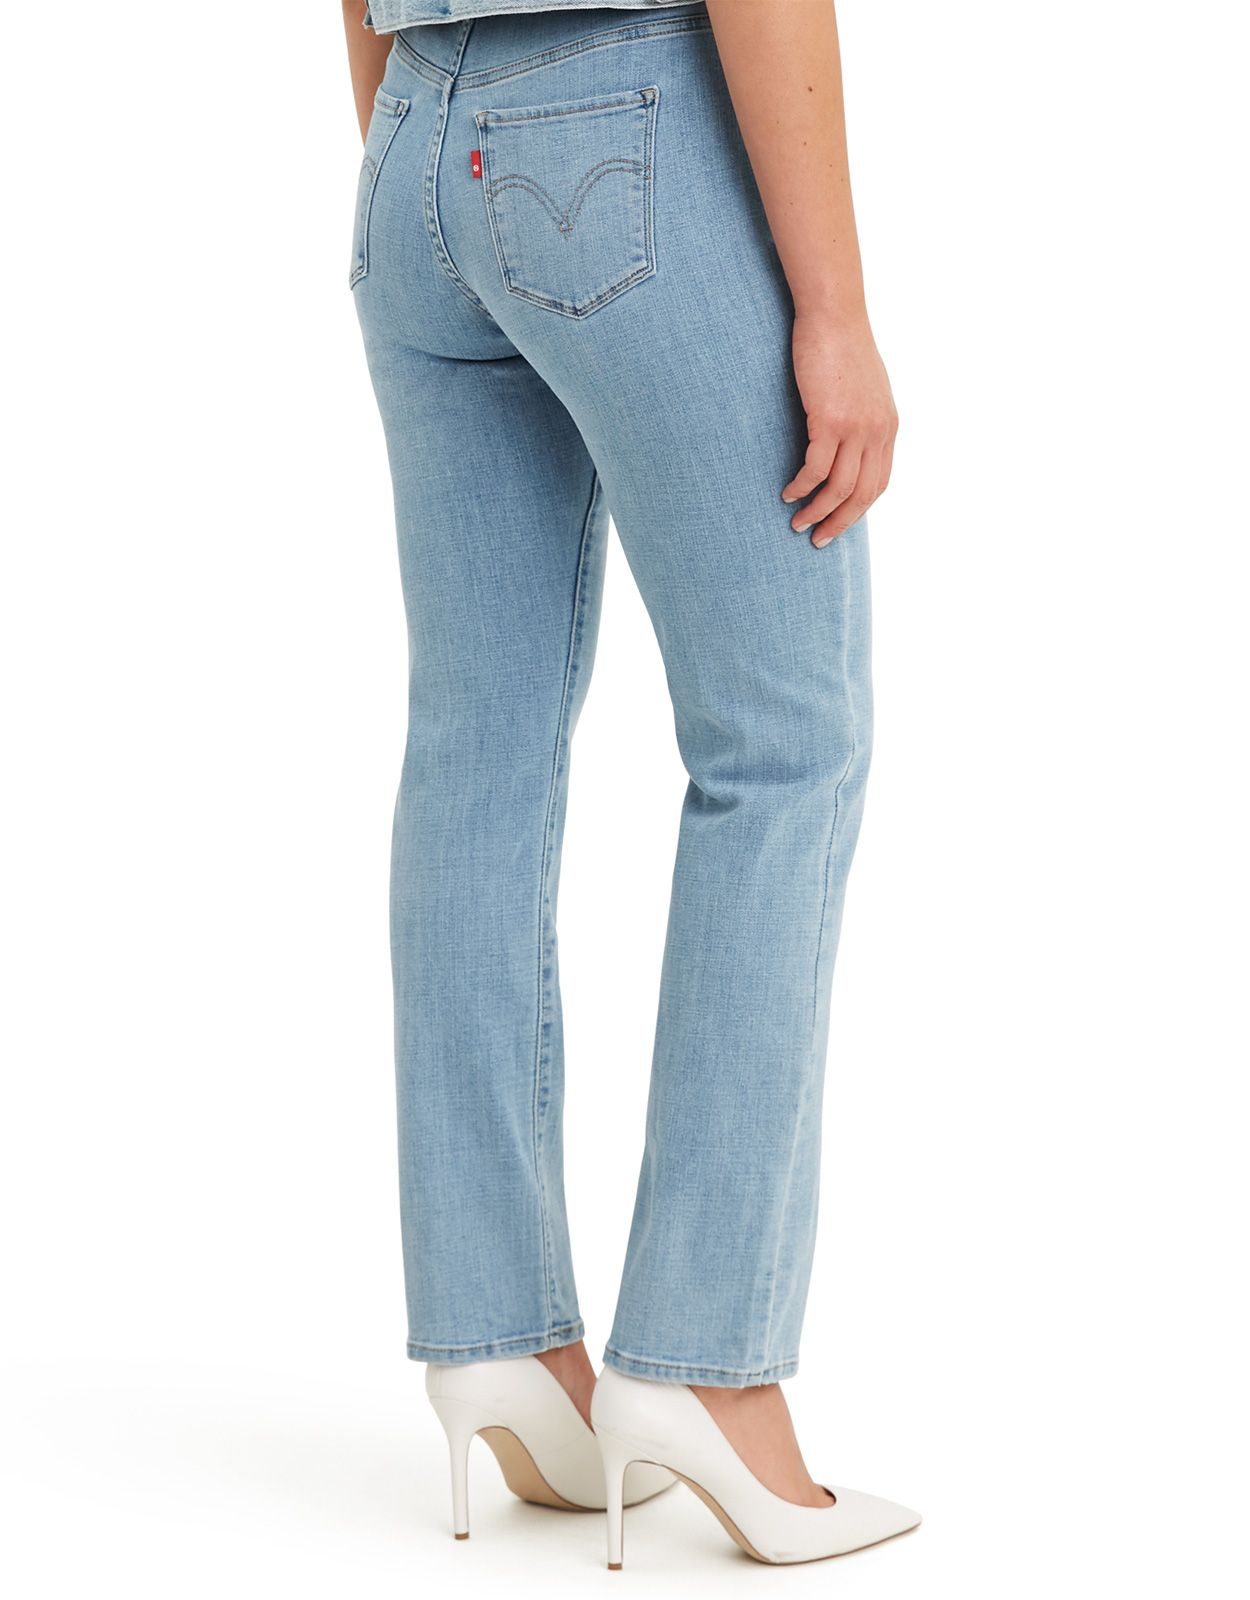 Levi's Women's Classic Straight Stretch Mid Rise Easy Fit Straight Leg Jeans - Slate Oahu Morning Dew